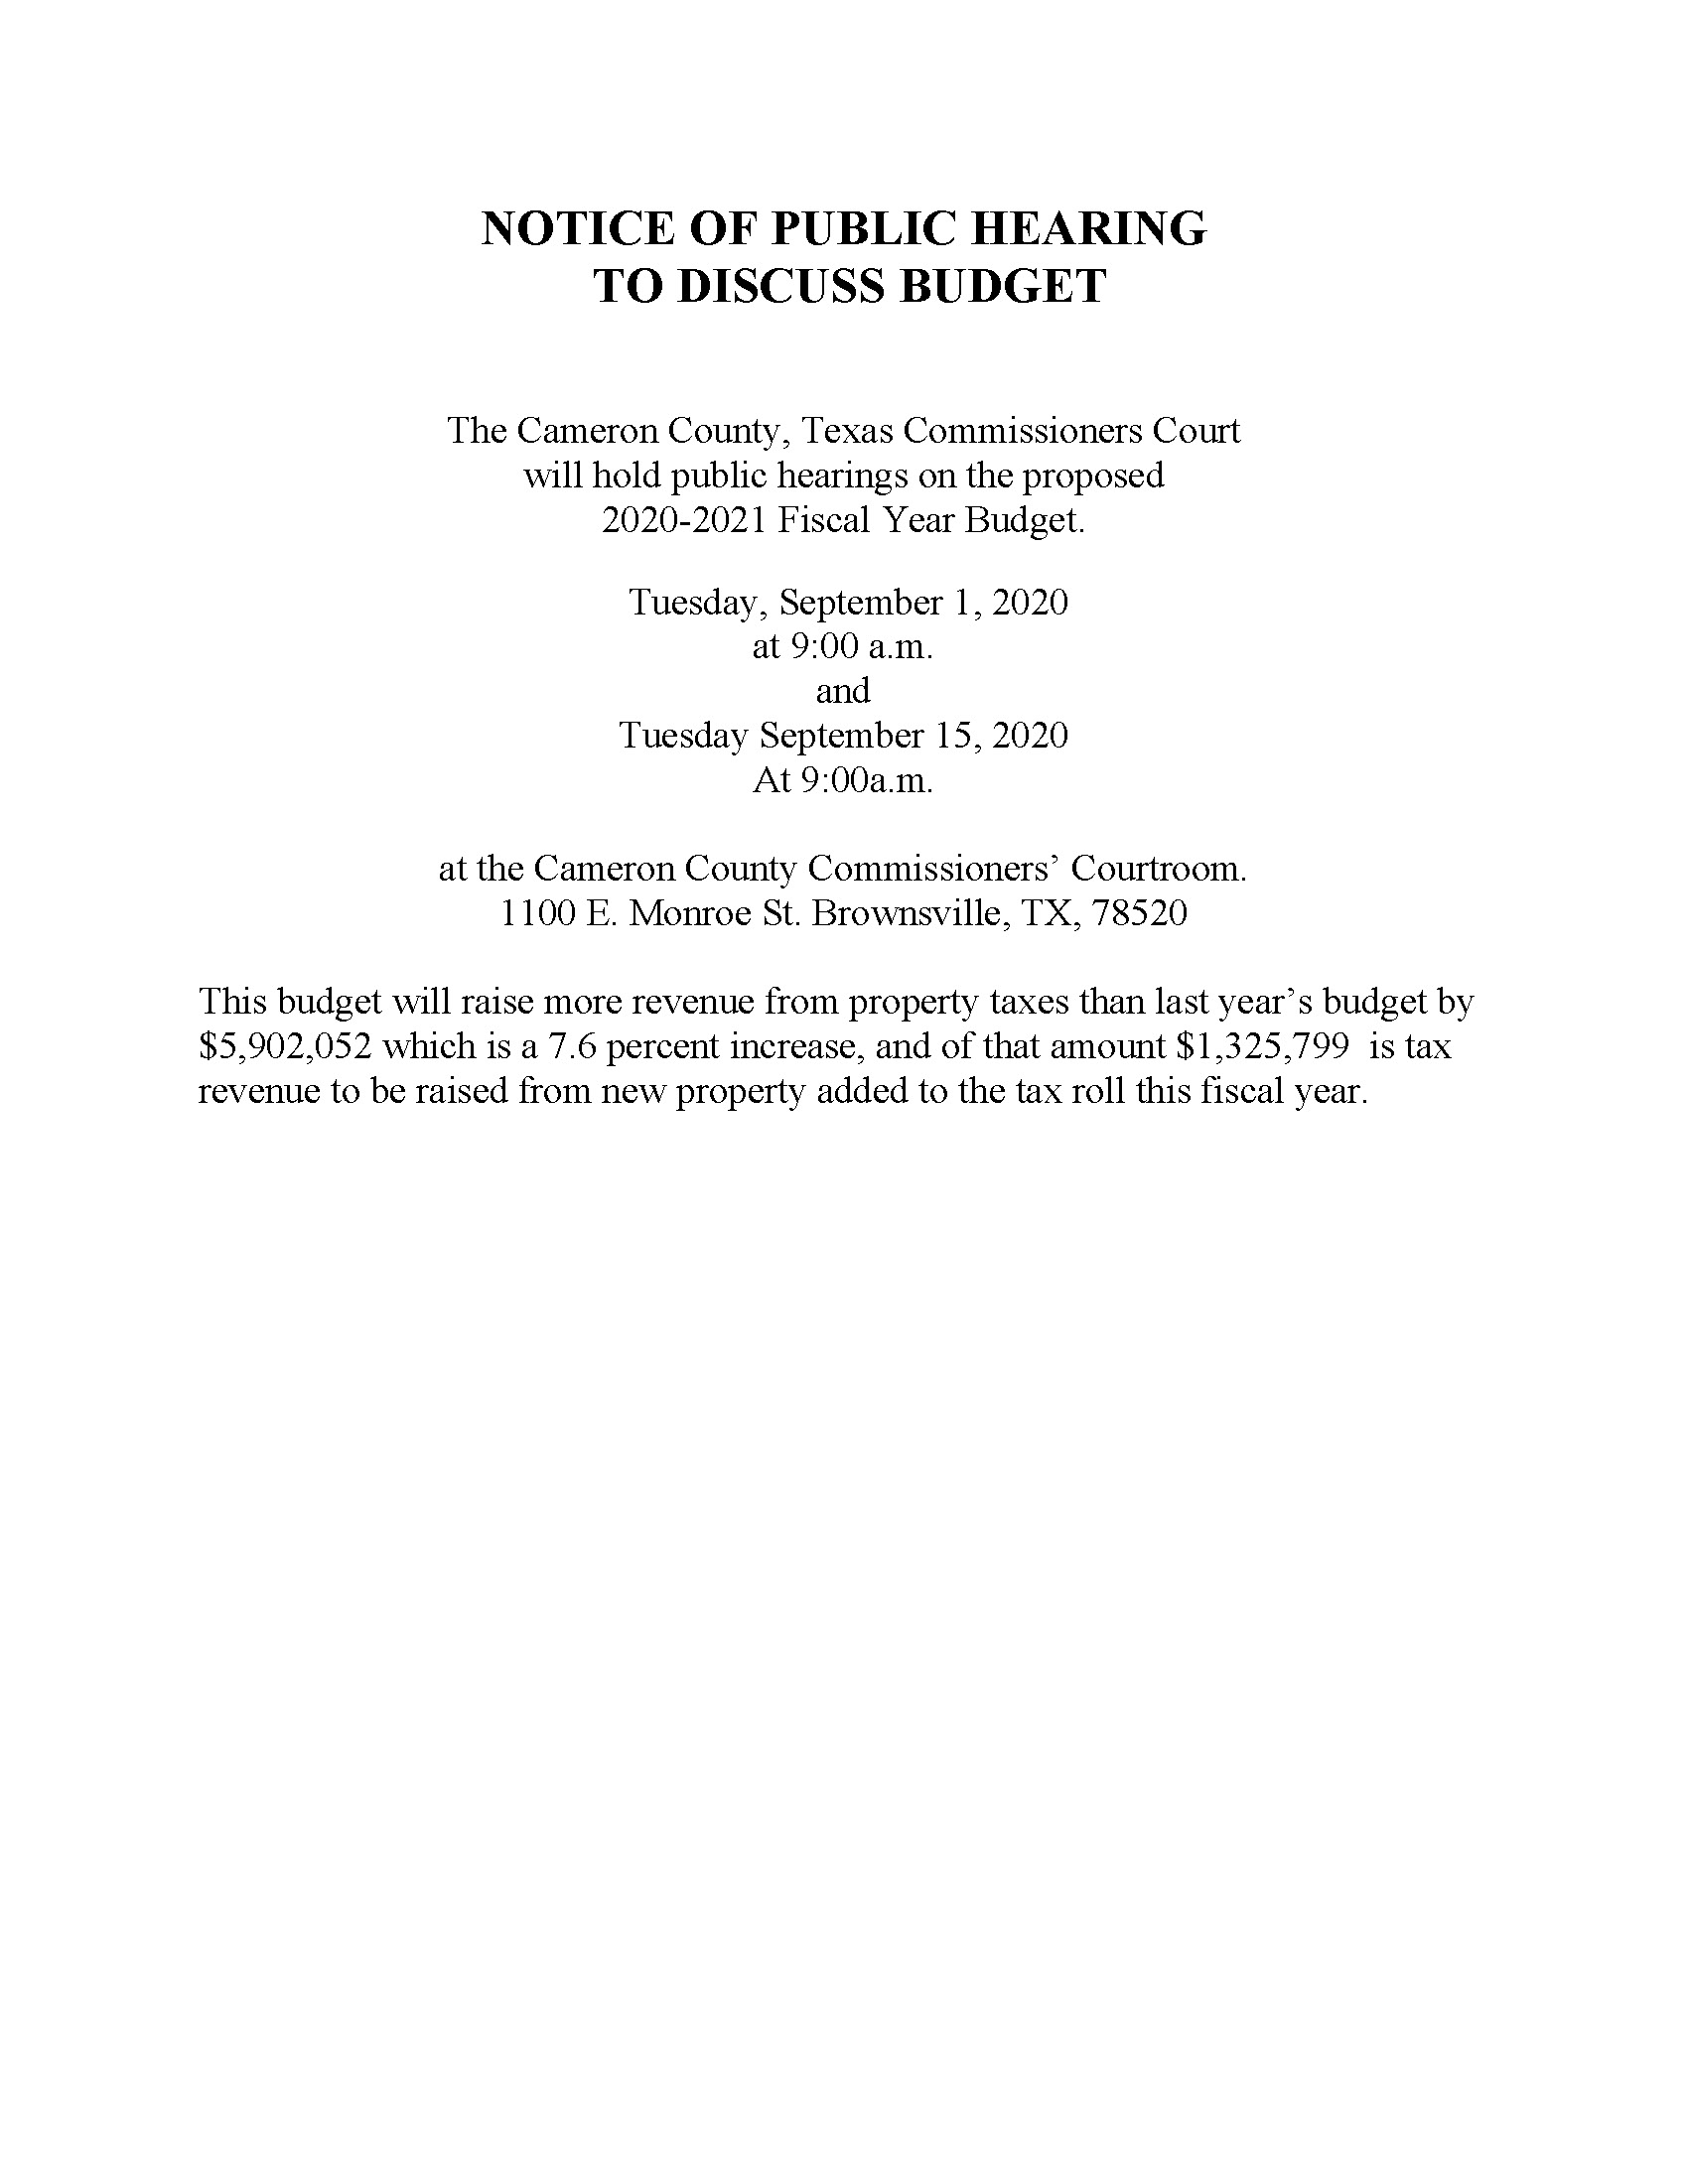 NOTICE OF PUBLIC HEARING BUDGET 2020